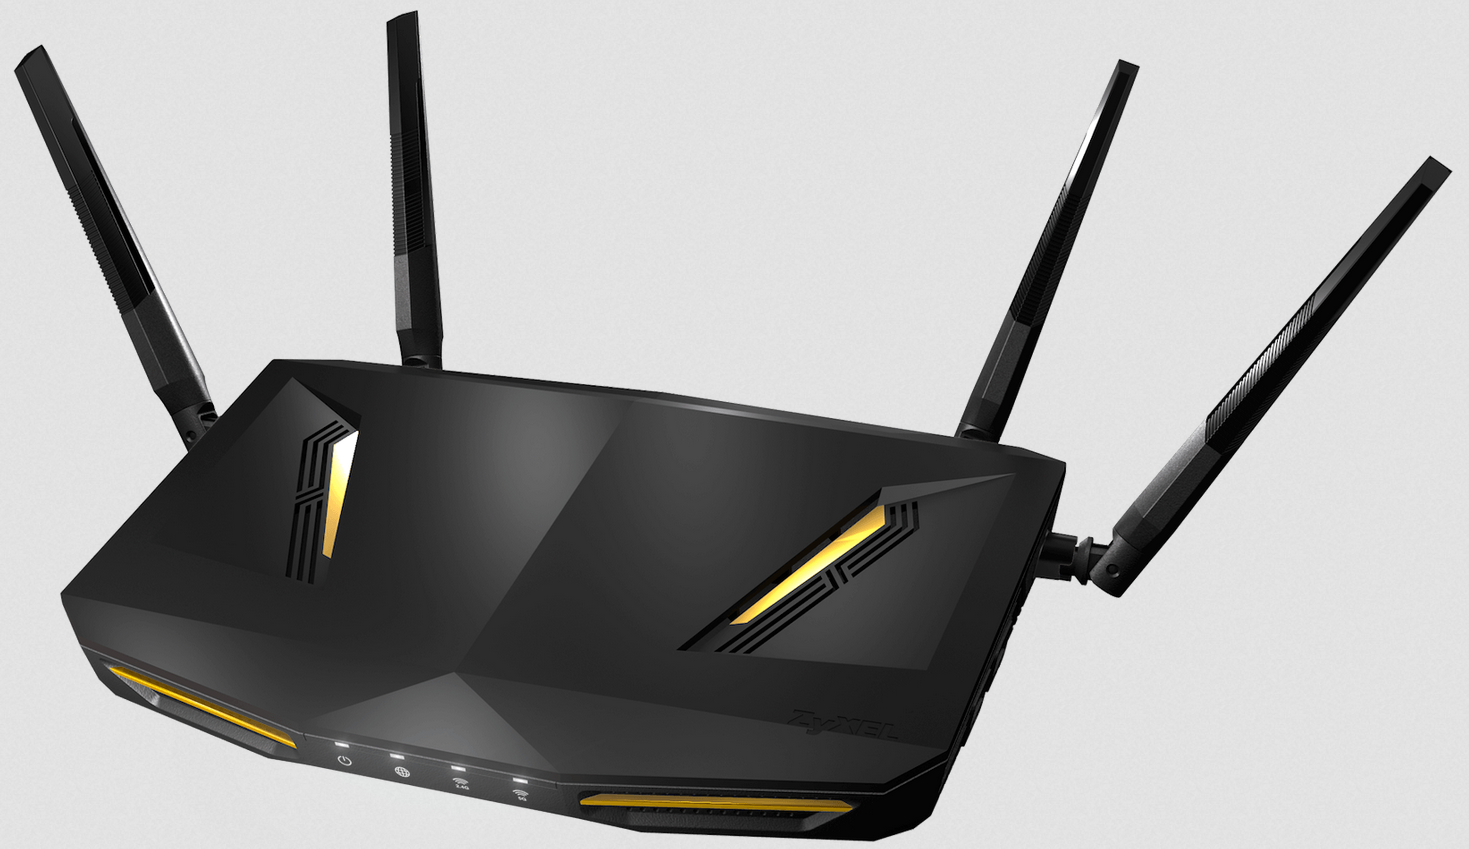 ZyXEL NBG6817 ARMOR Z2 AC2600 MU-MIMO Dual-Band Wireless Gigabit Router